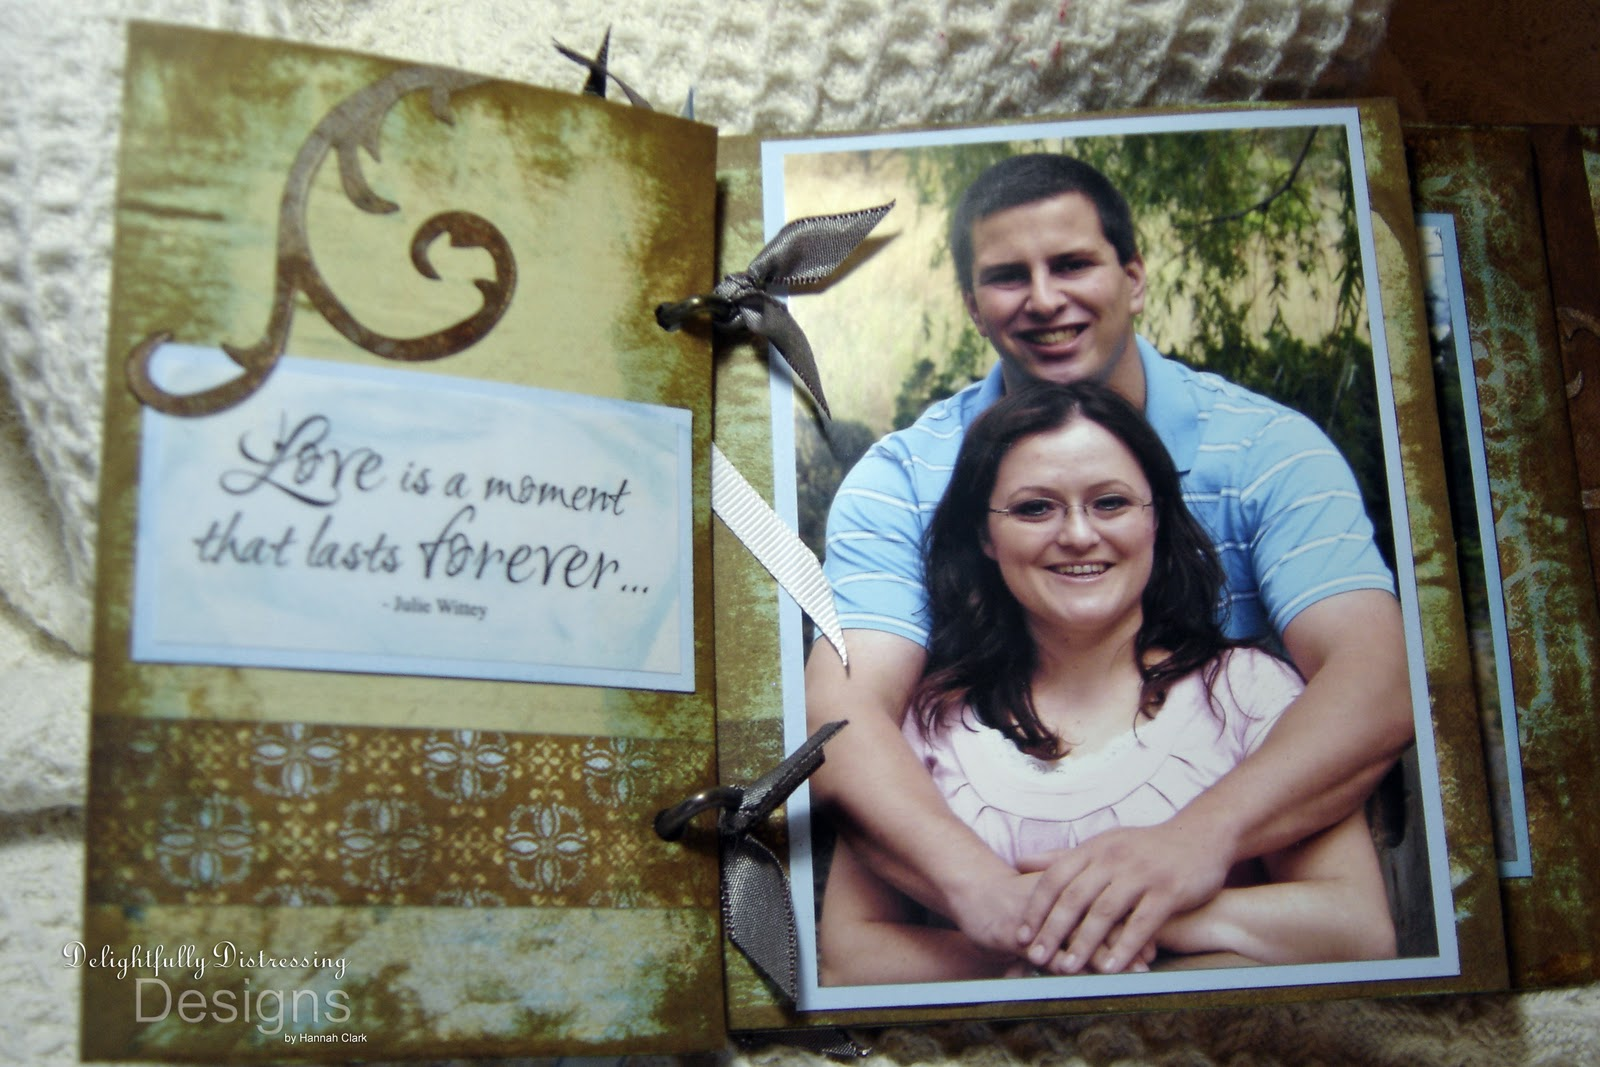 Delightfully Distressing Designs: Engagement Gift Album